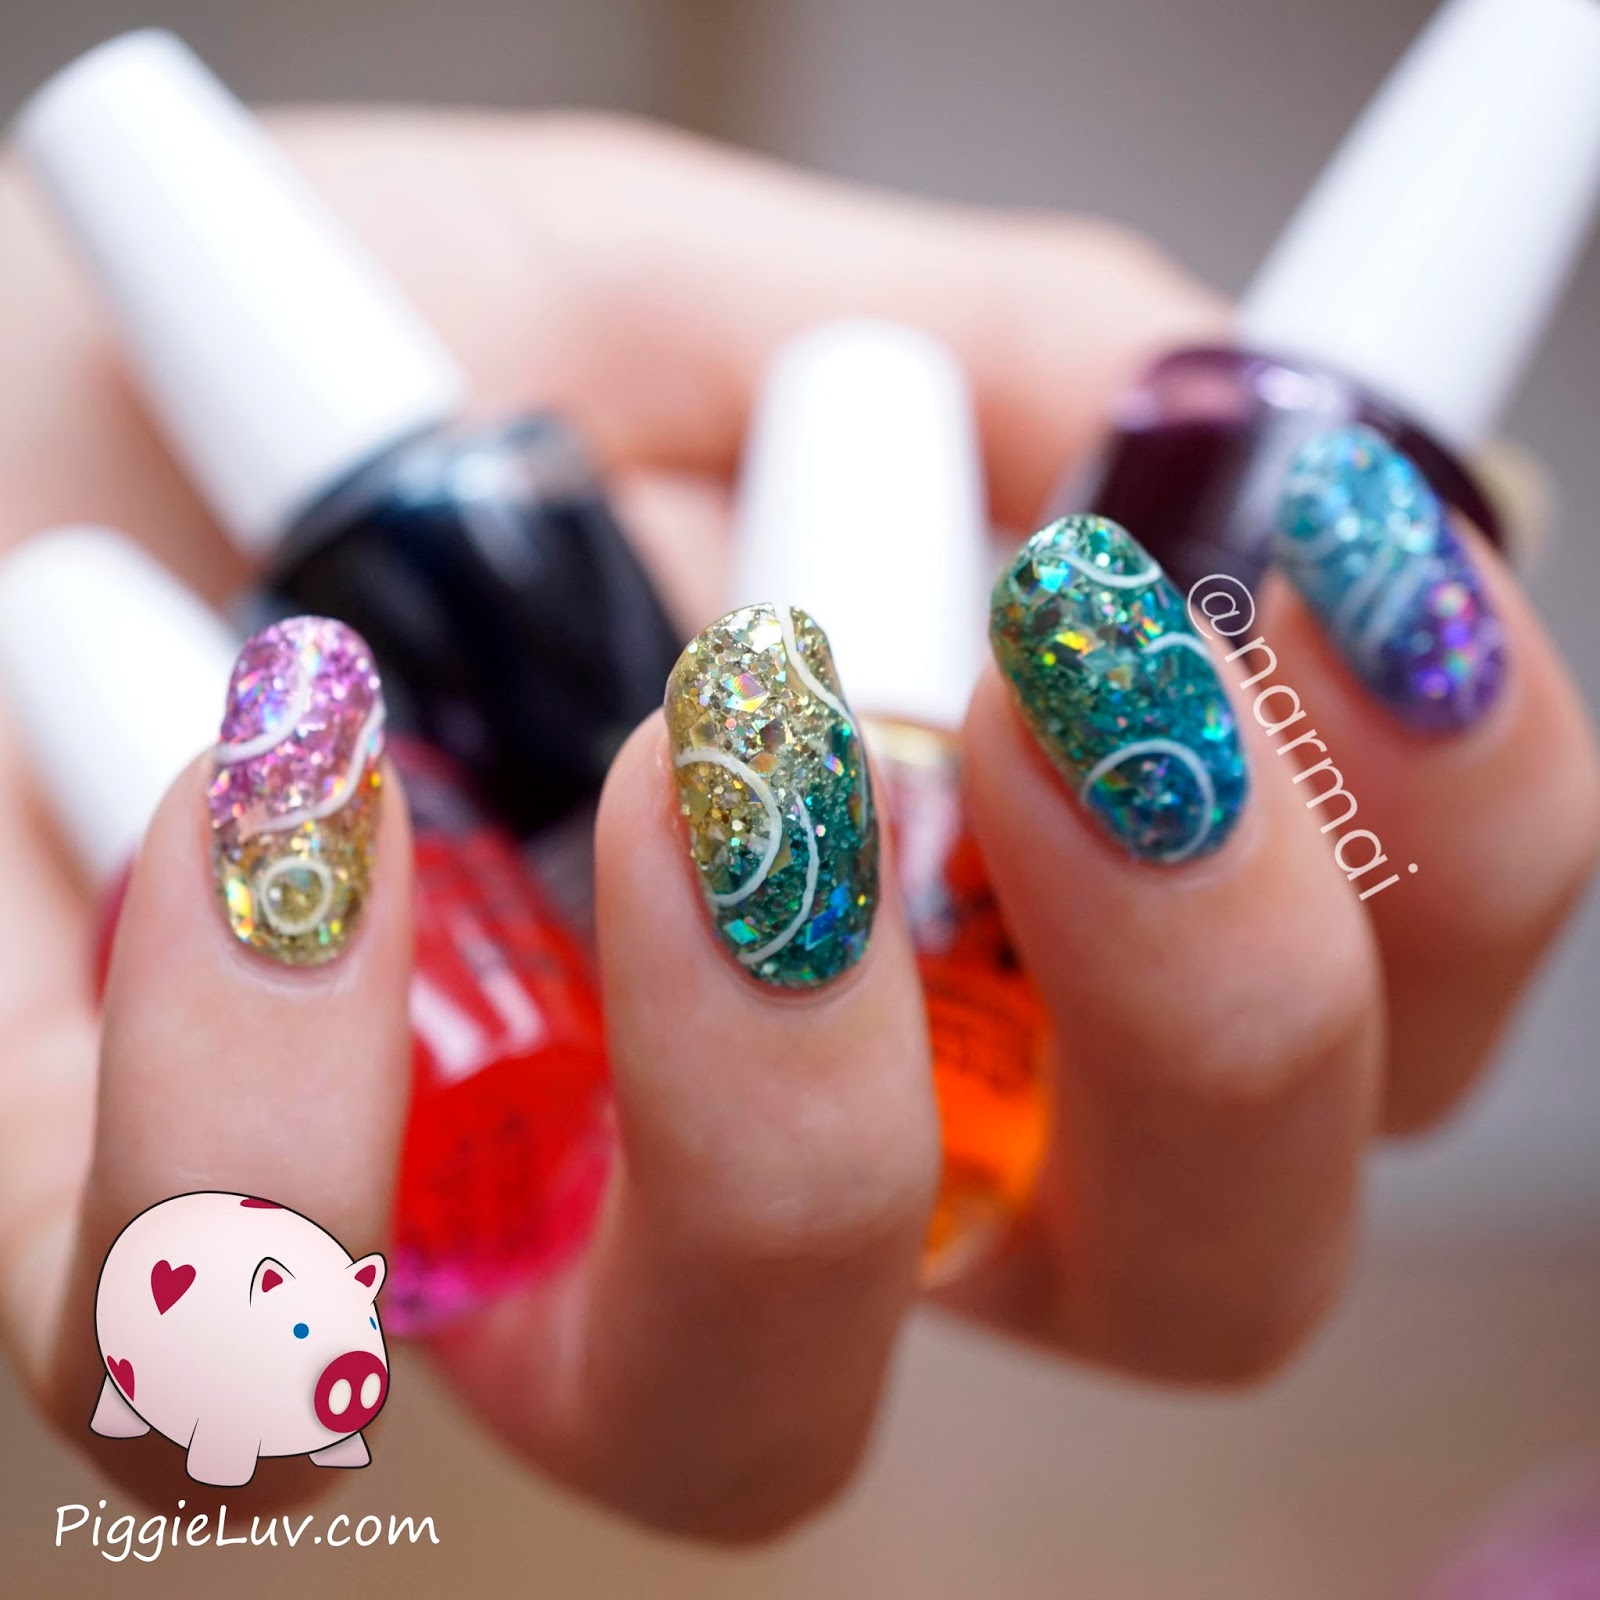 Piggieluv Glitter Jellies Nail Art With Opi Sheer Tints